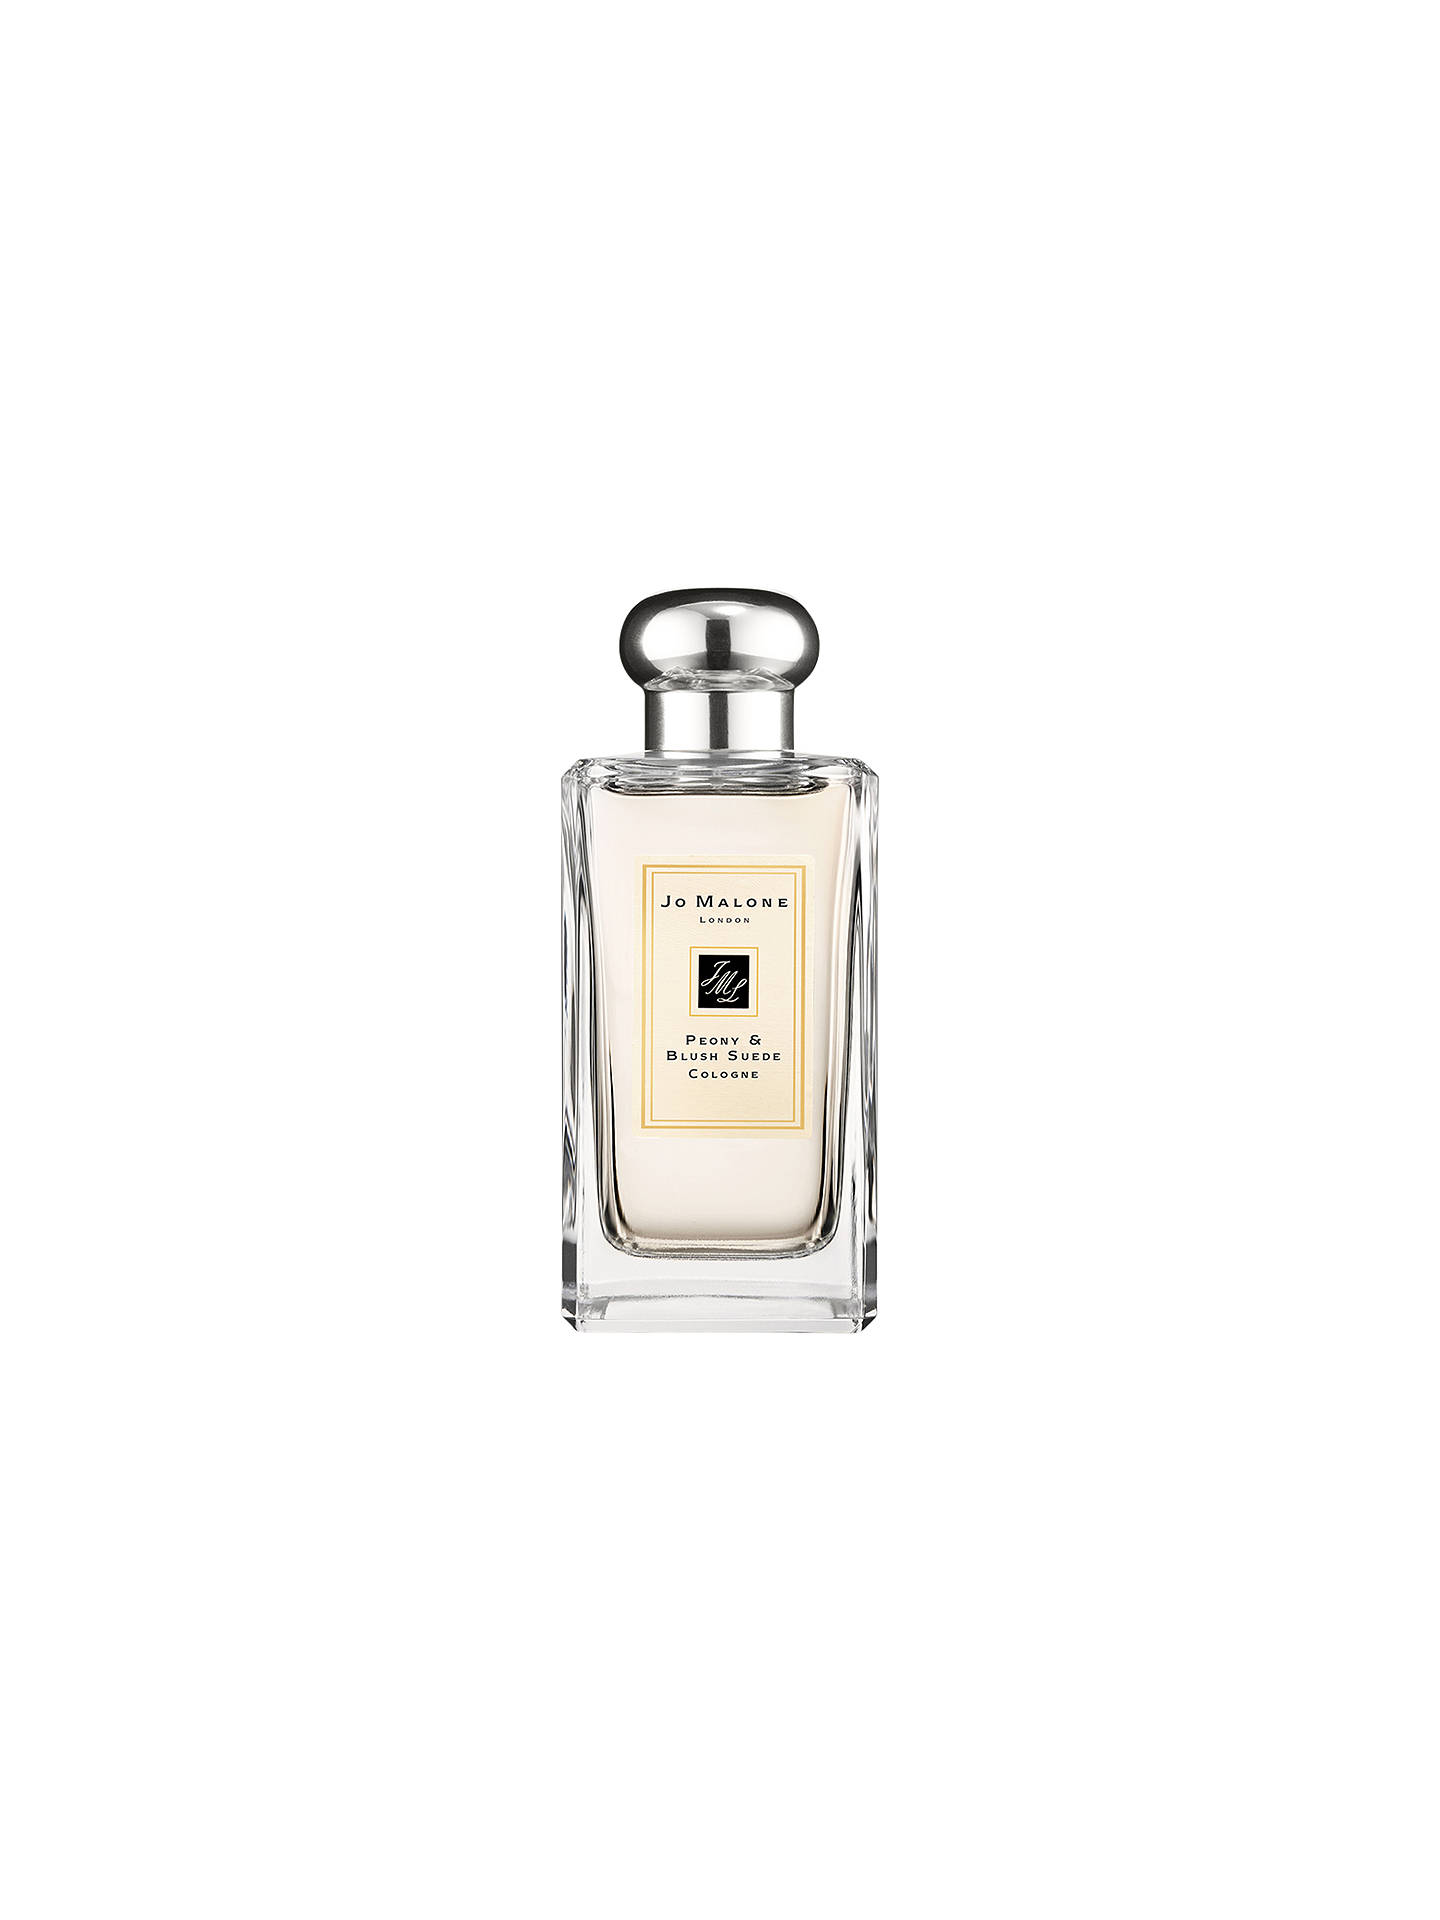 Buy Jo Malone London Peony & Blush Suede Cologne, 100ml Online at johnlewis.com